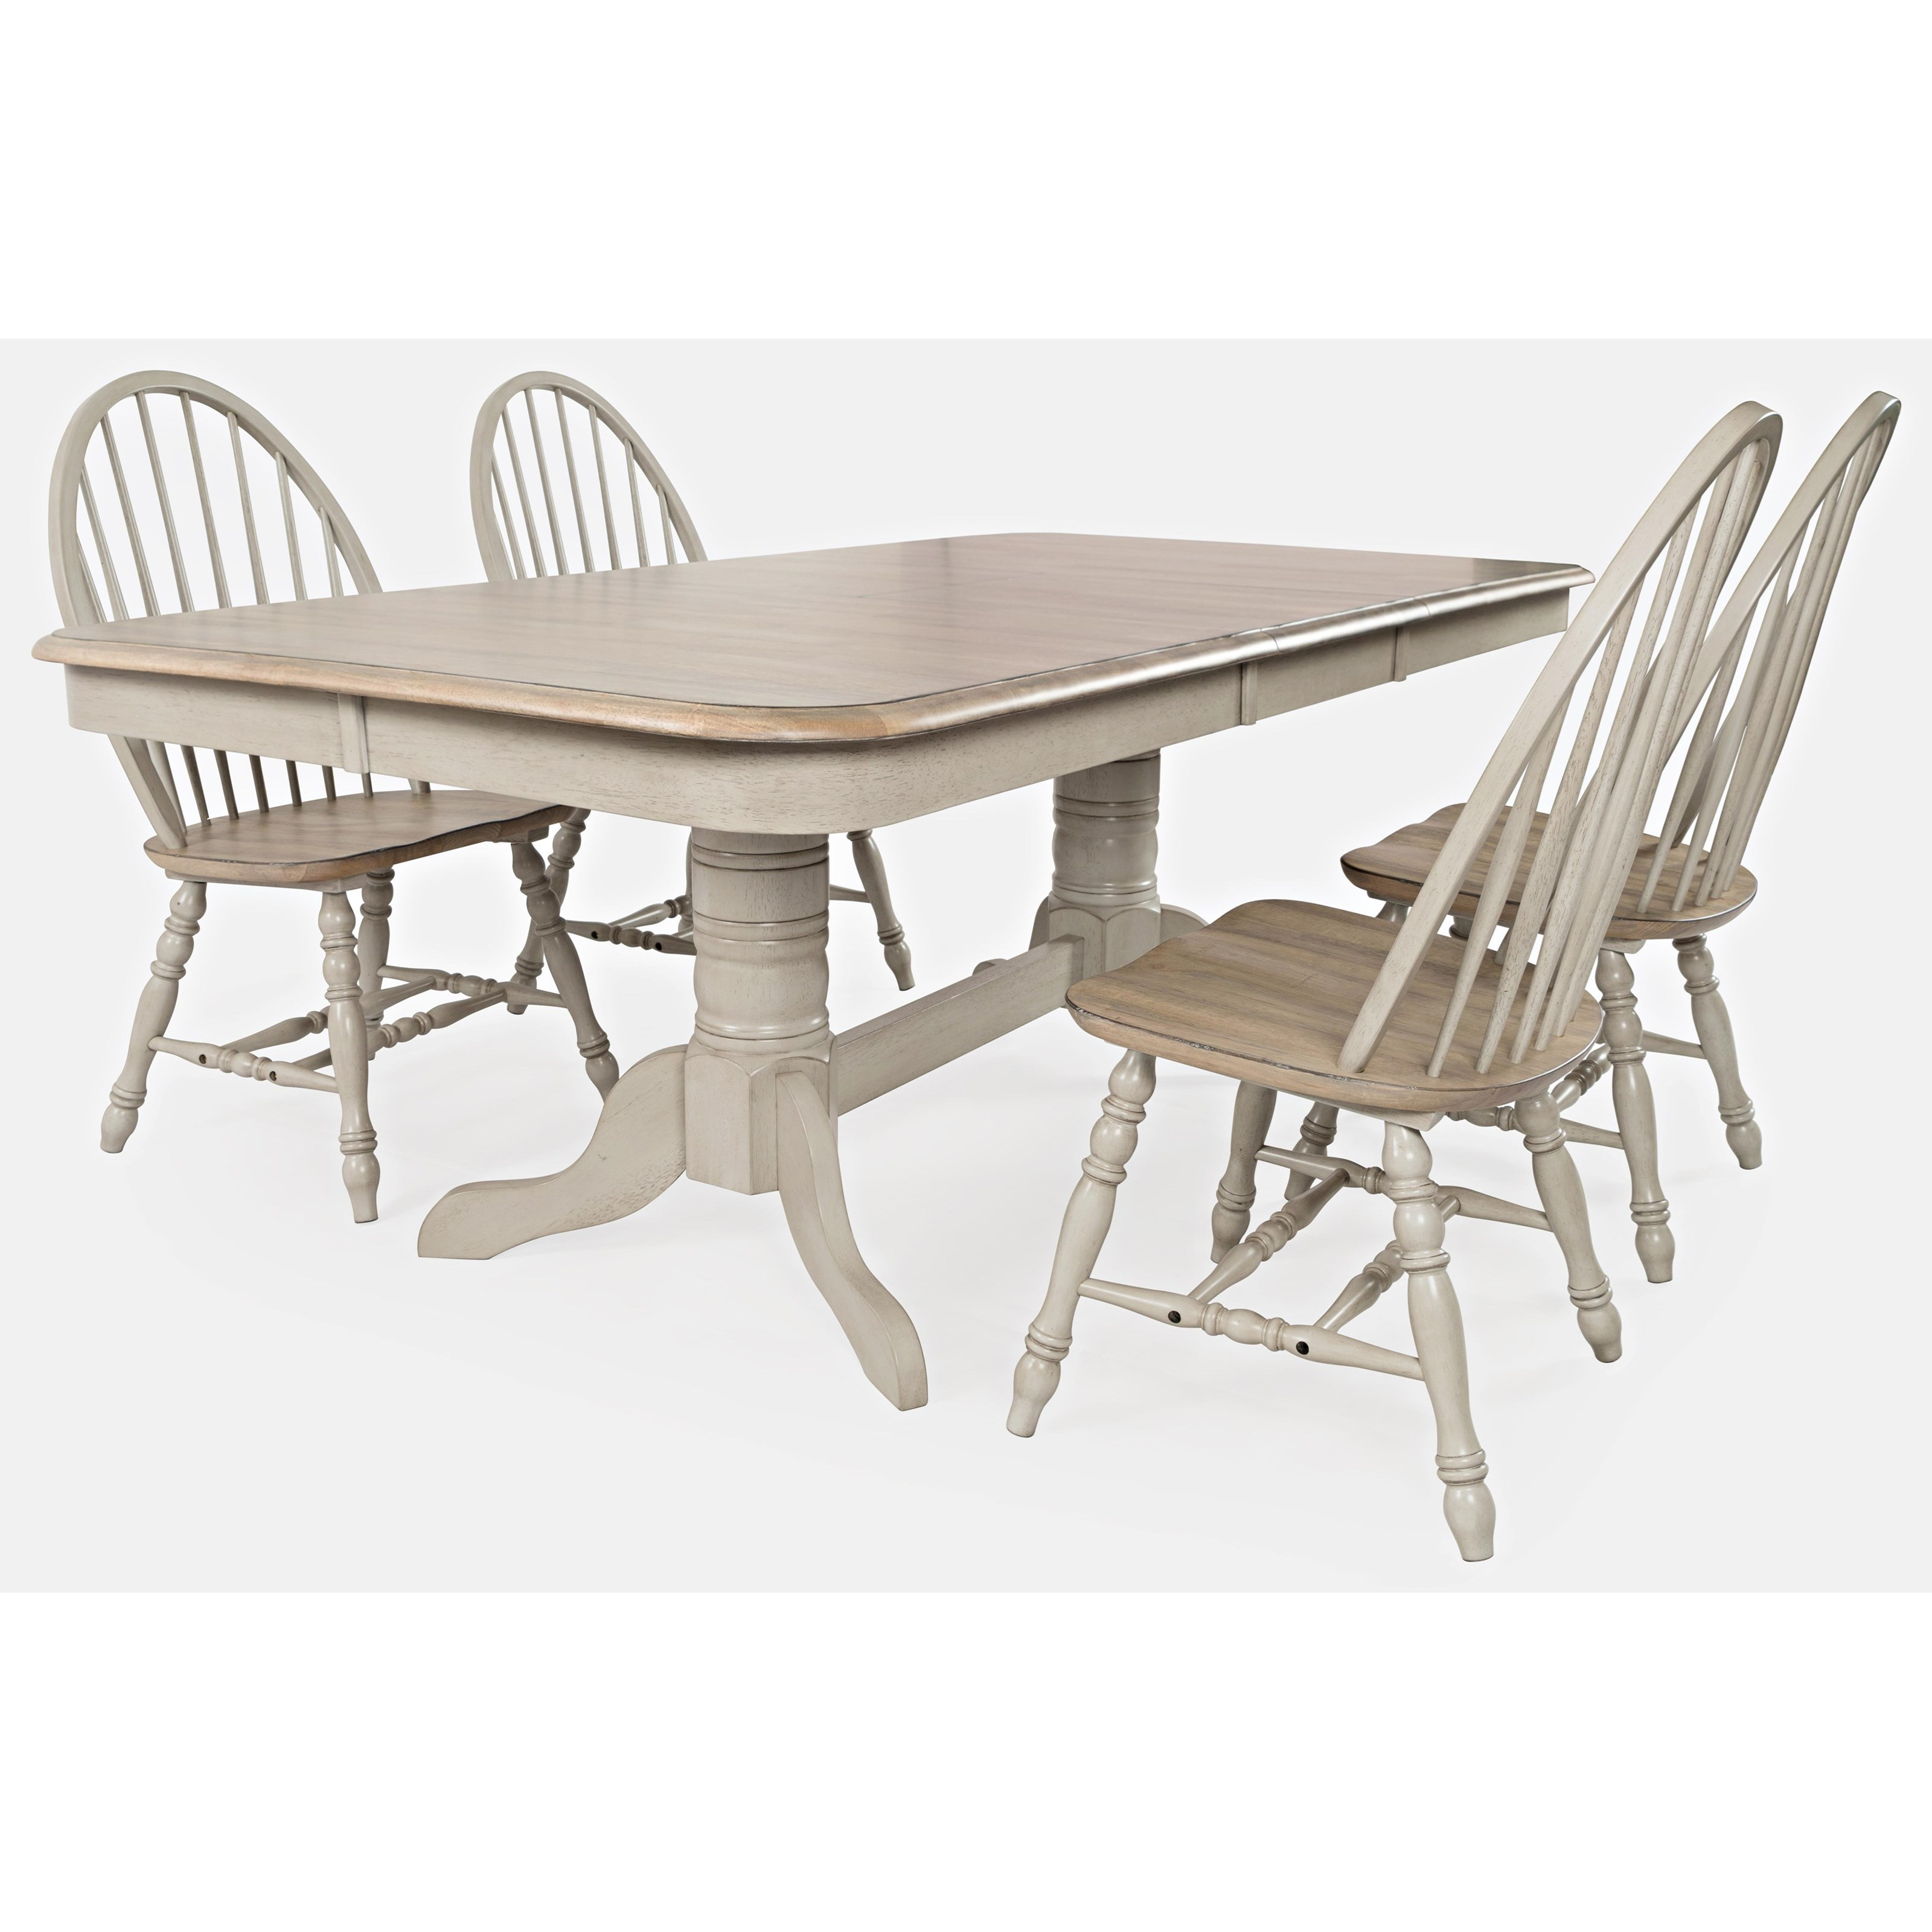 Westport 5-Piece Dining Table and Chair Set by Jofran at Jofran